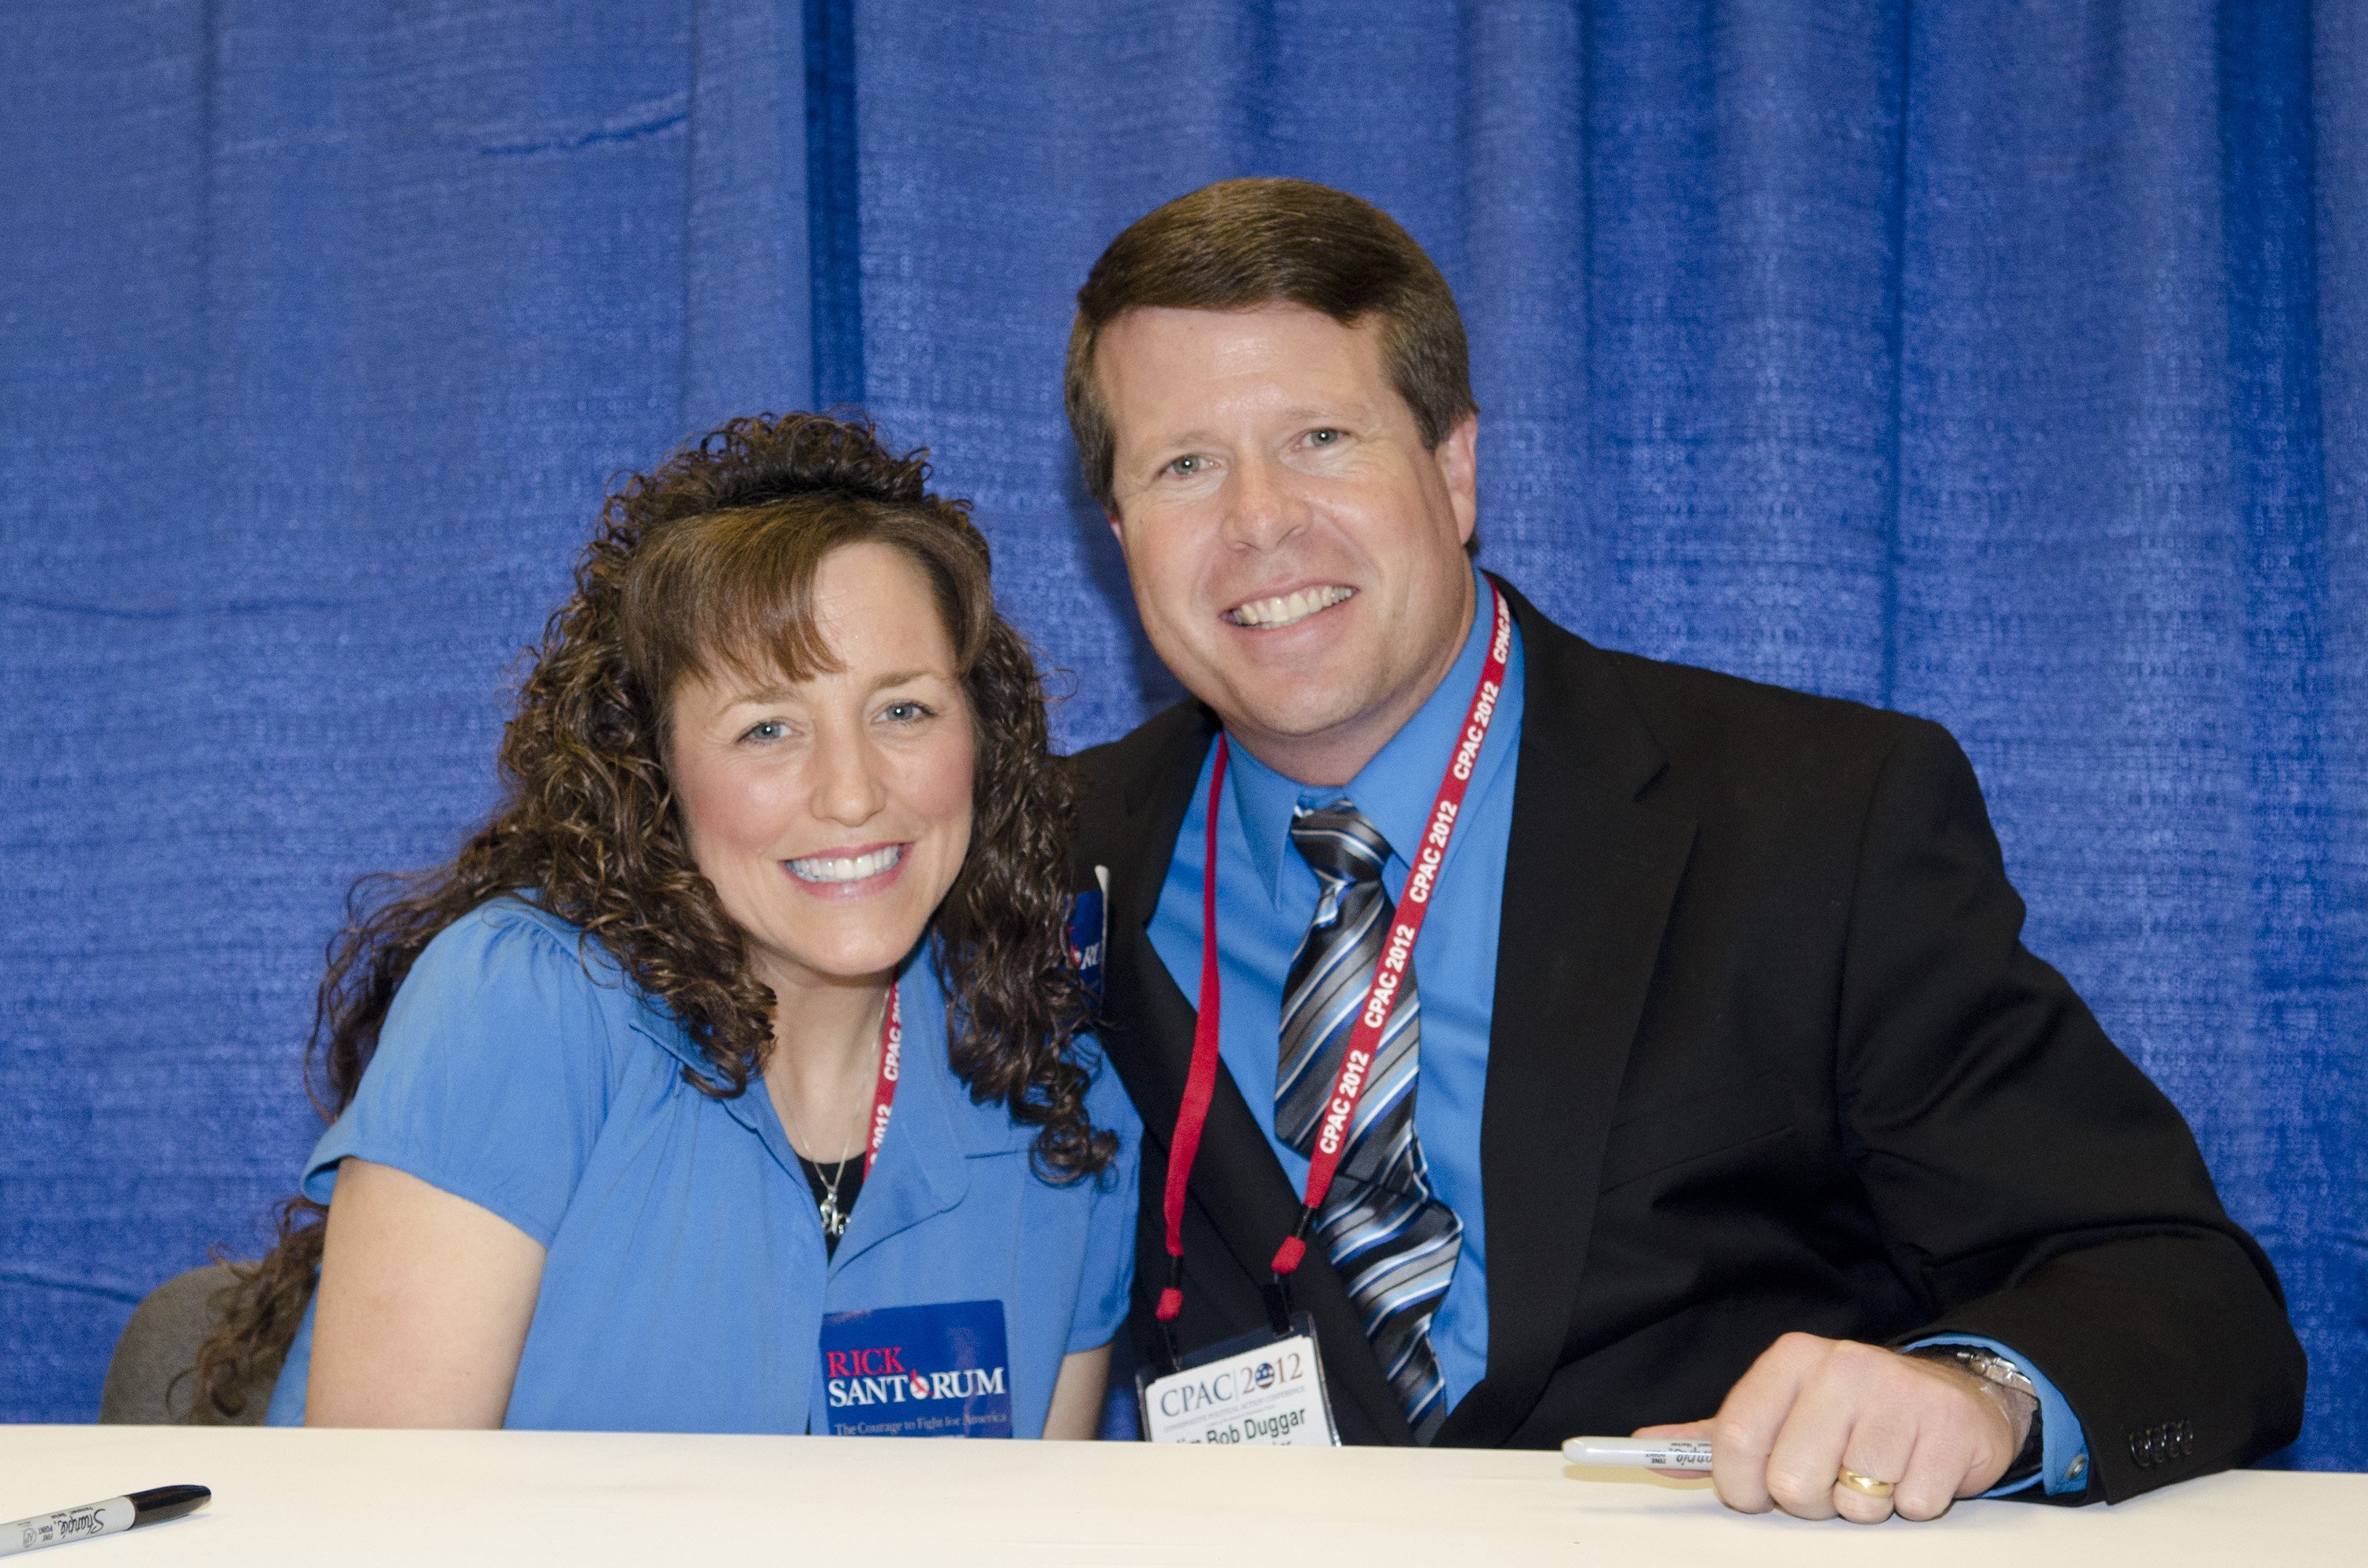 Michelle Duggar and Jim Bob Duggar attend the Conservative Political Action Conference in Washington, D.C., on February 10, 2012 | Photo: Getty Images